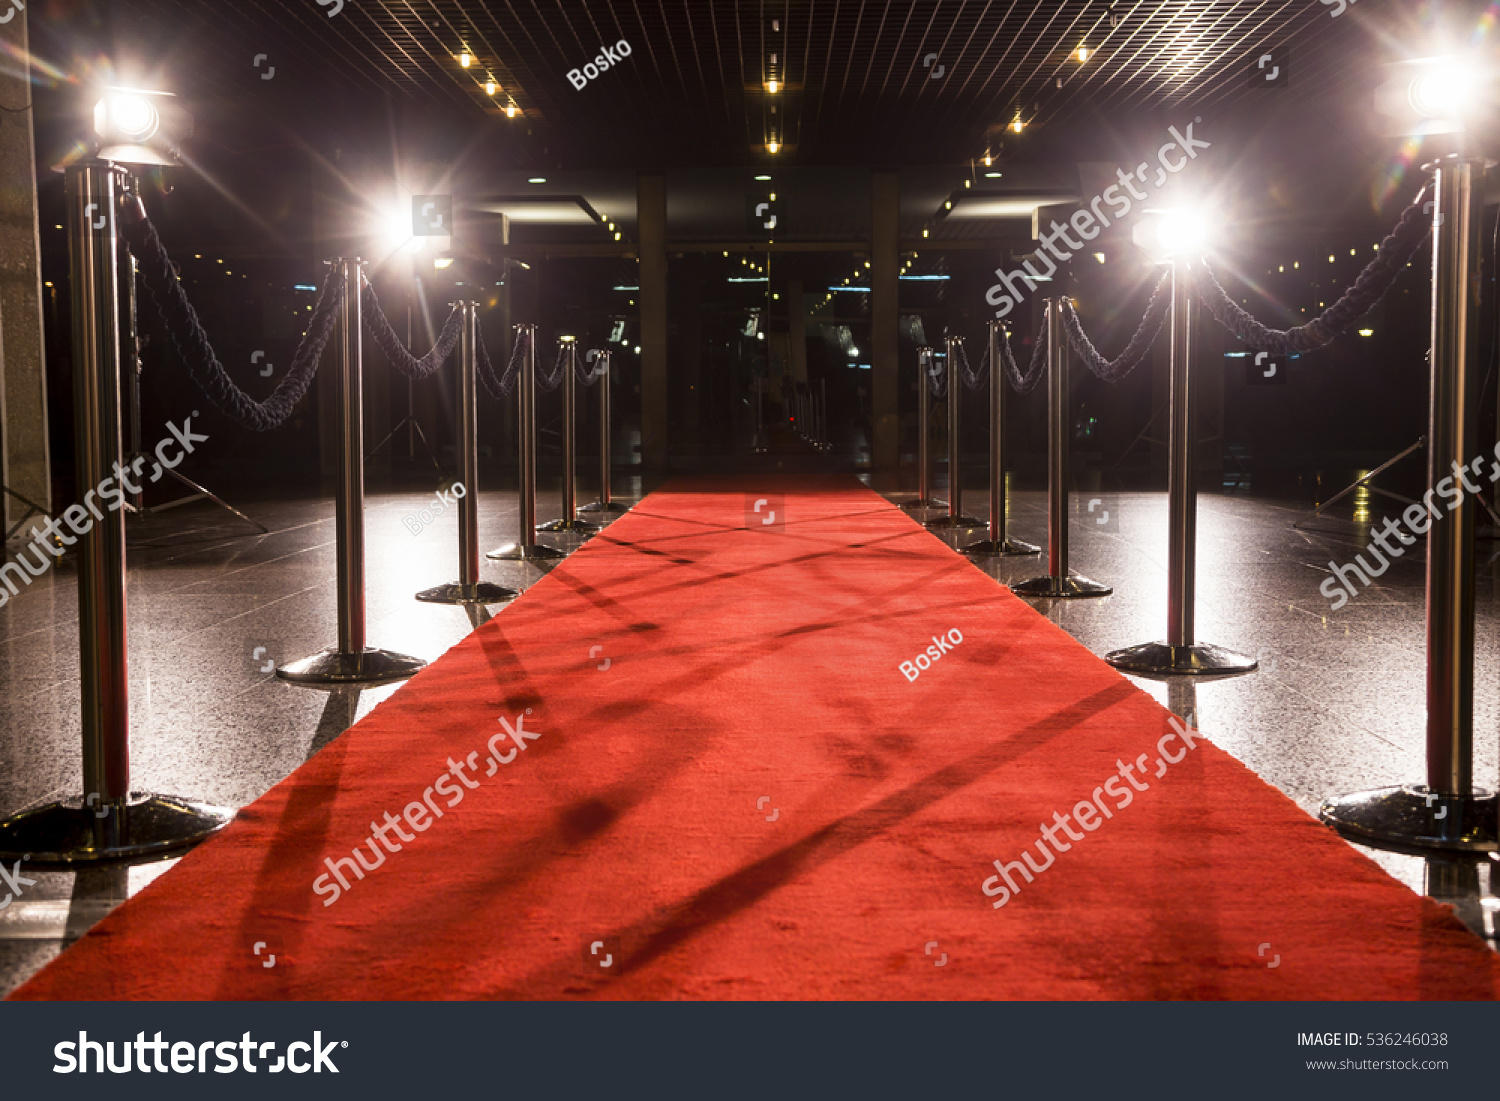 Long red carpet between rope barriers on entrance. #536246038